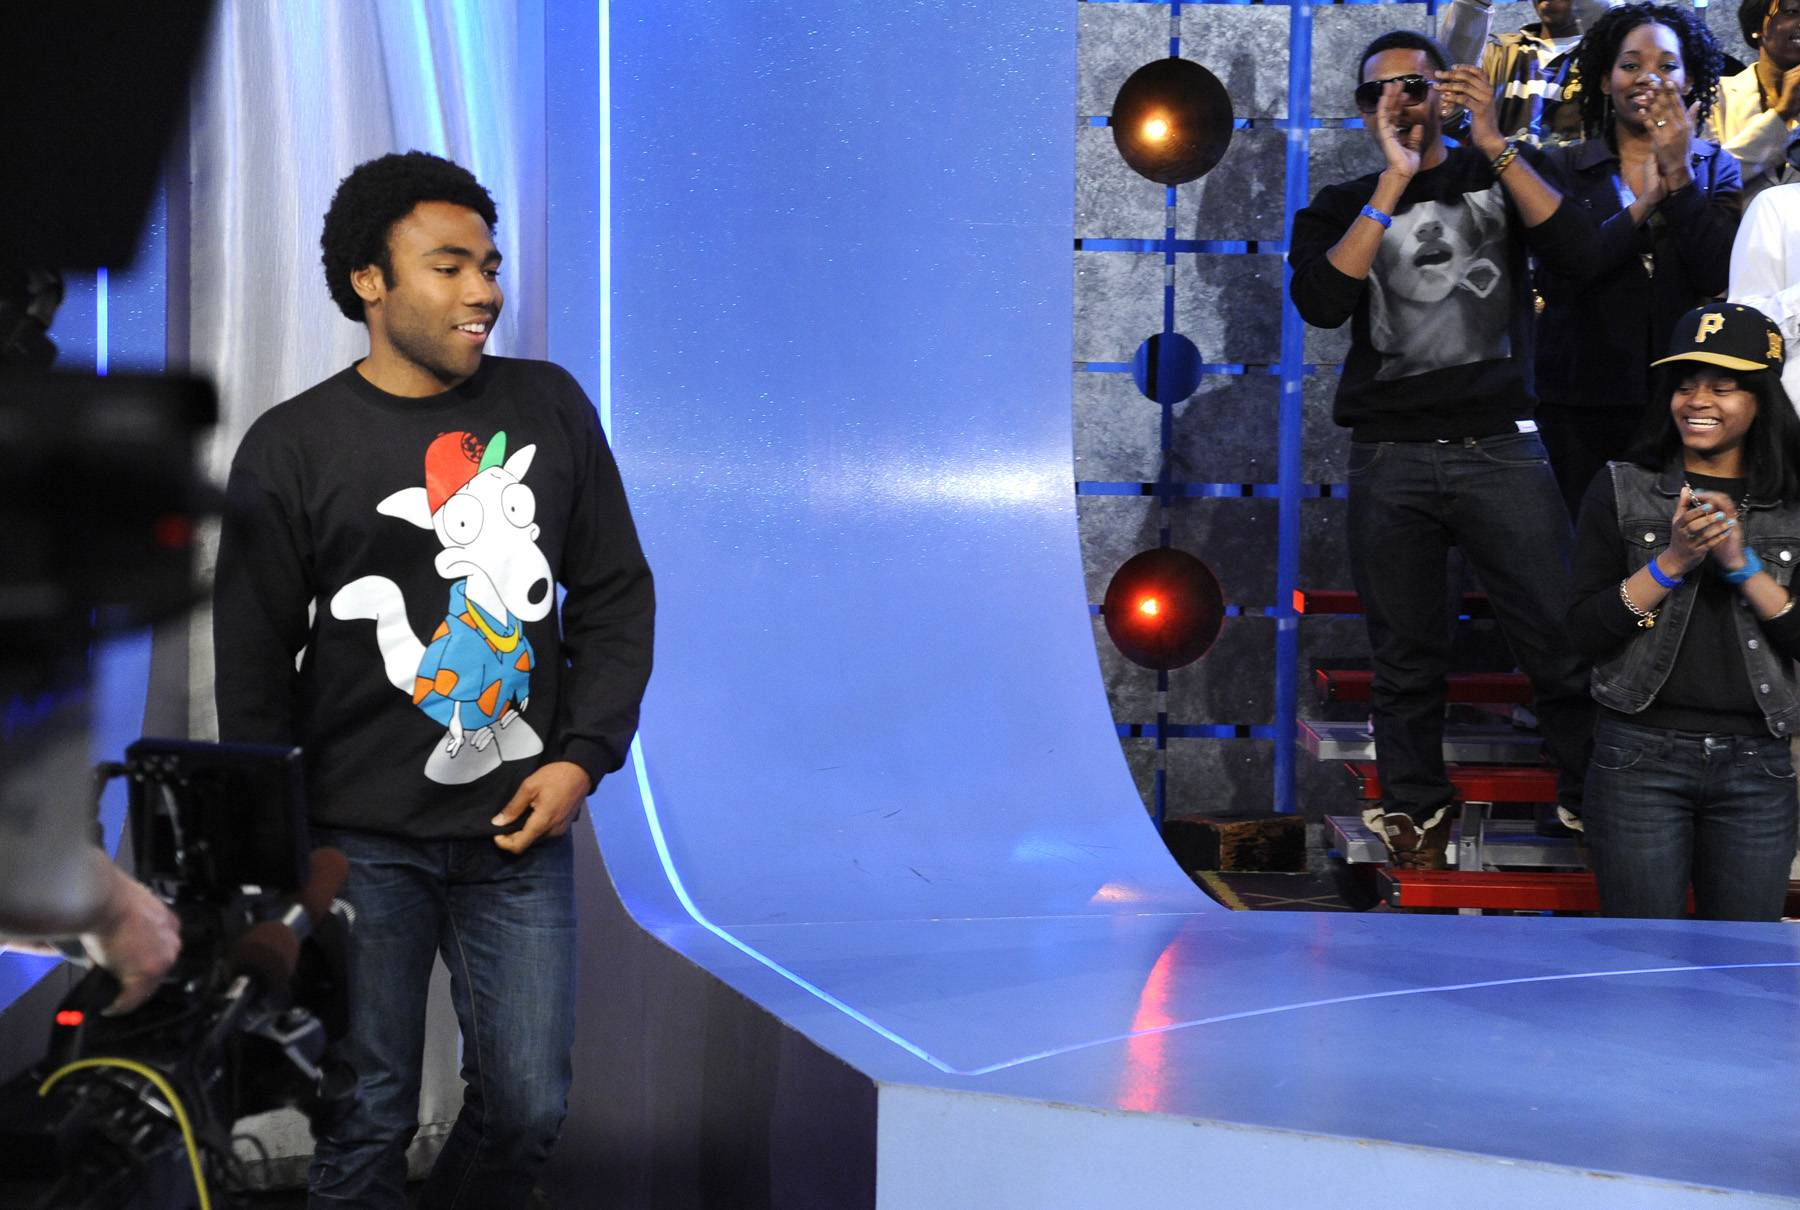 Come On Up - Childish Gambino takes the stage at 106 & Park, May 1, 2012. (Photo: John Ricard / BET)